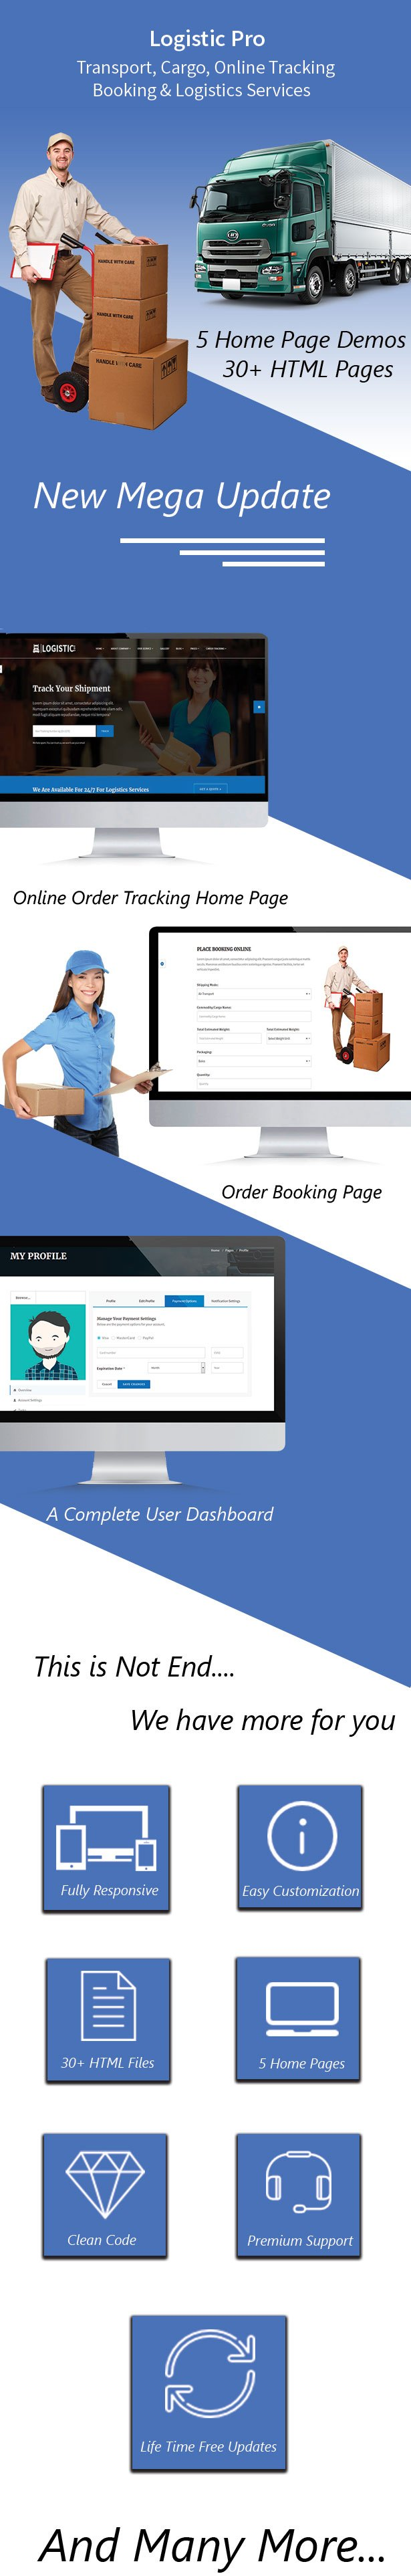 Logistic Pro - Transport - Cargo - Online Tracking - Booking & Logistics Services - 2